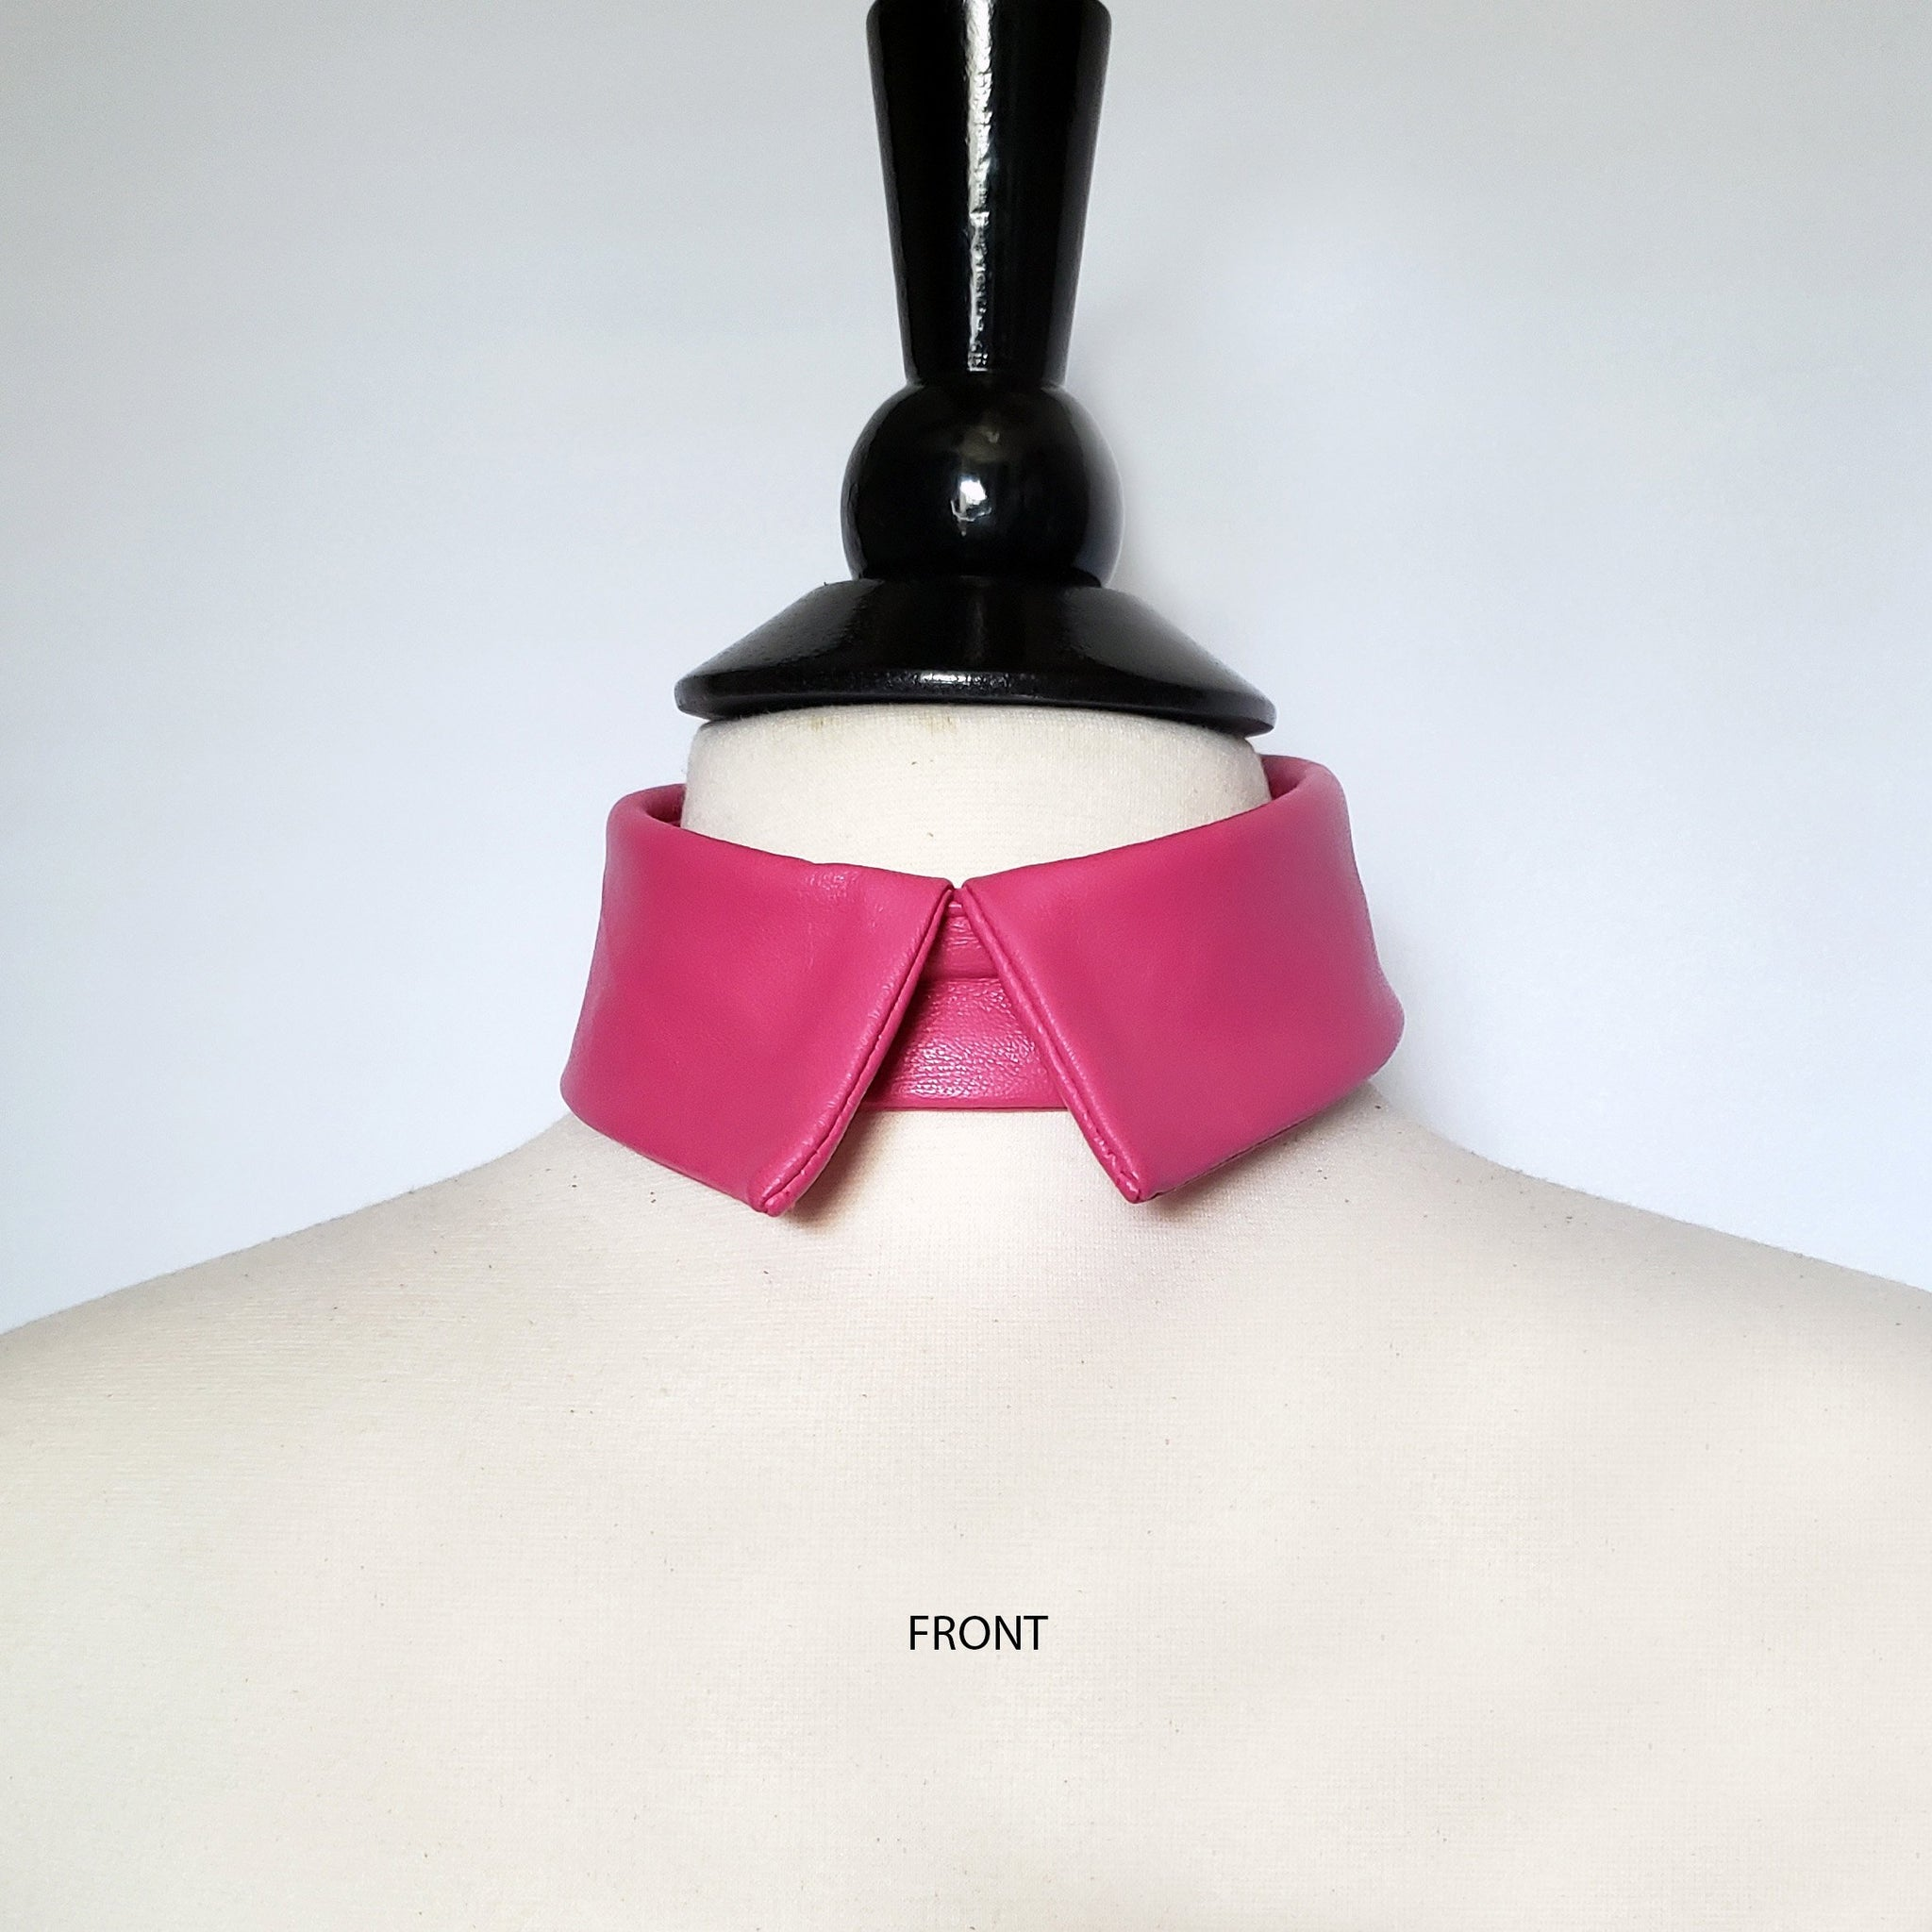 Beny Hart. Leather detachable collar in pink. Limited edition. True fashion statement!